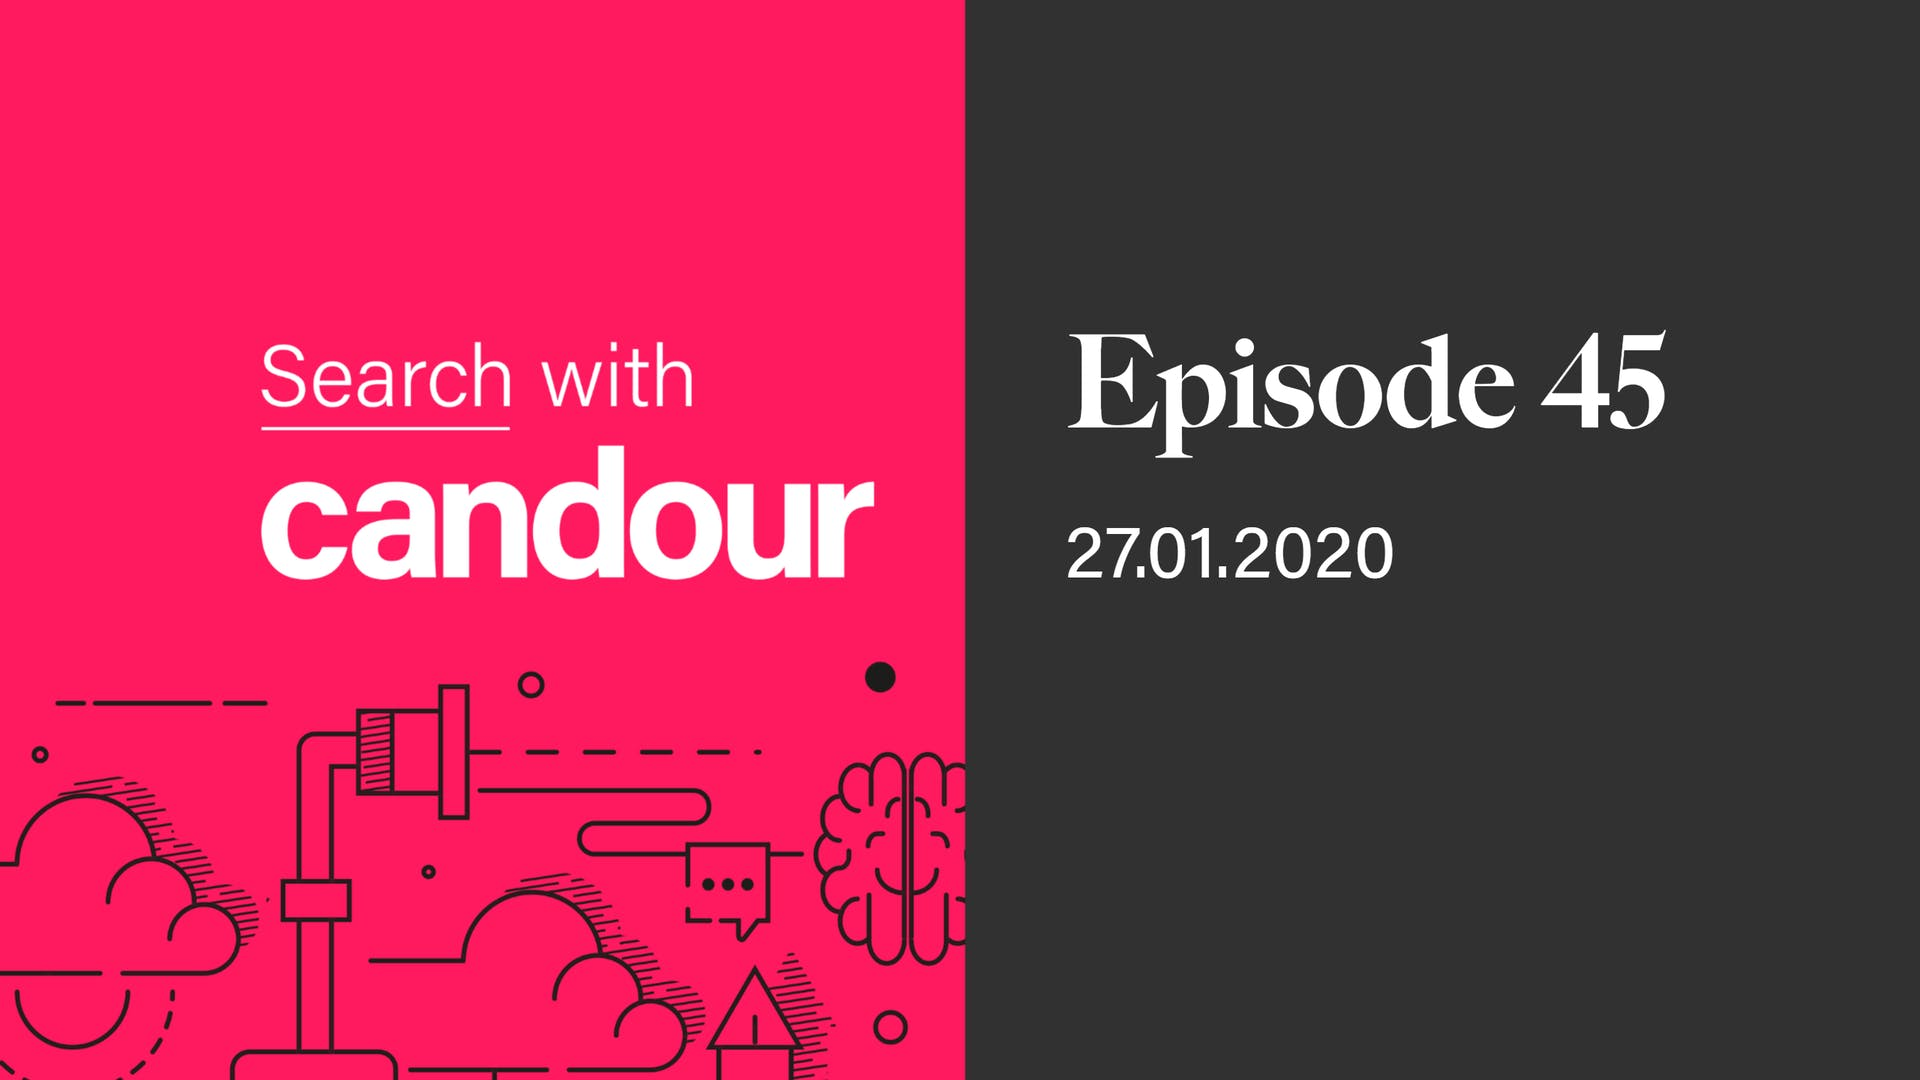 Search with Candour - Episode 45